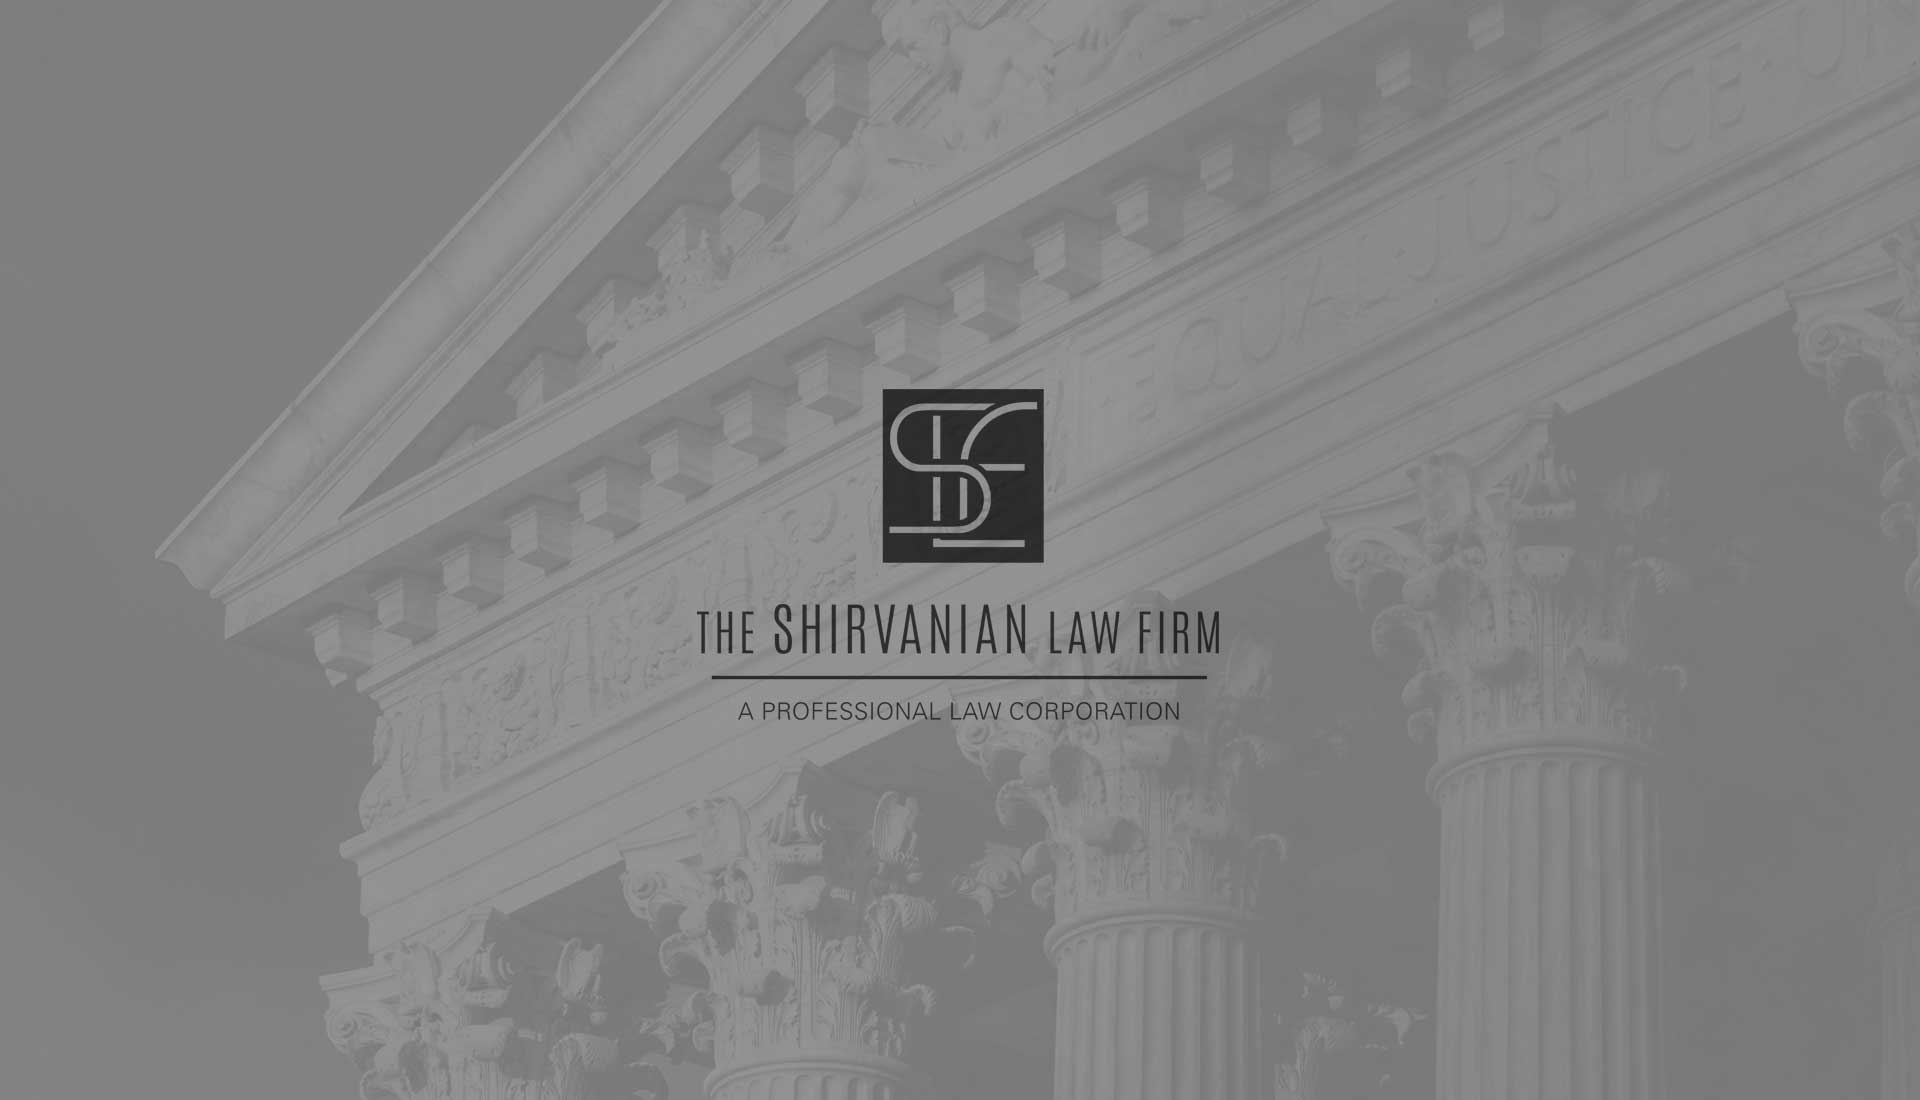 Shirvanian Law Firm